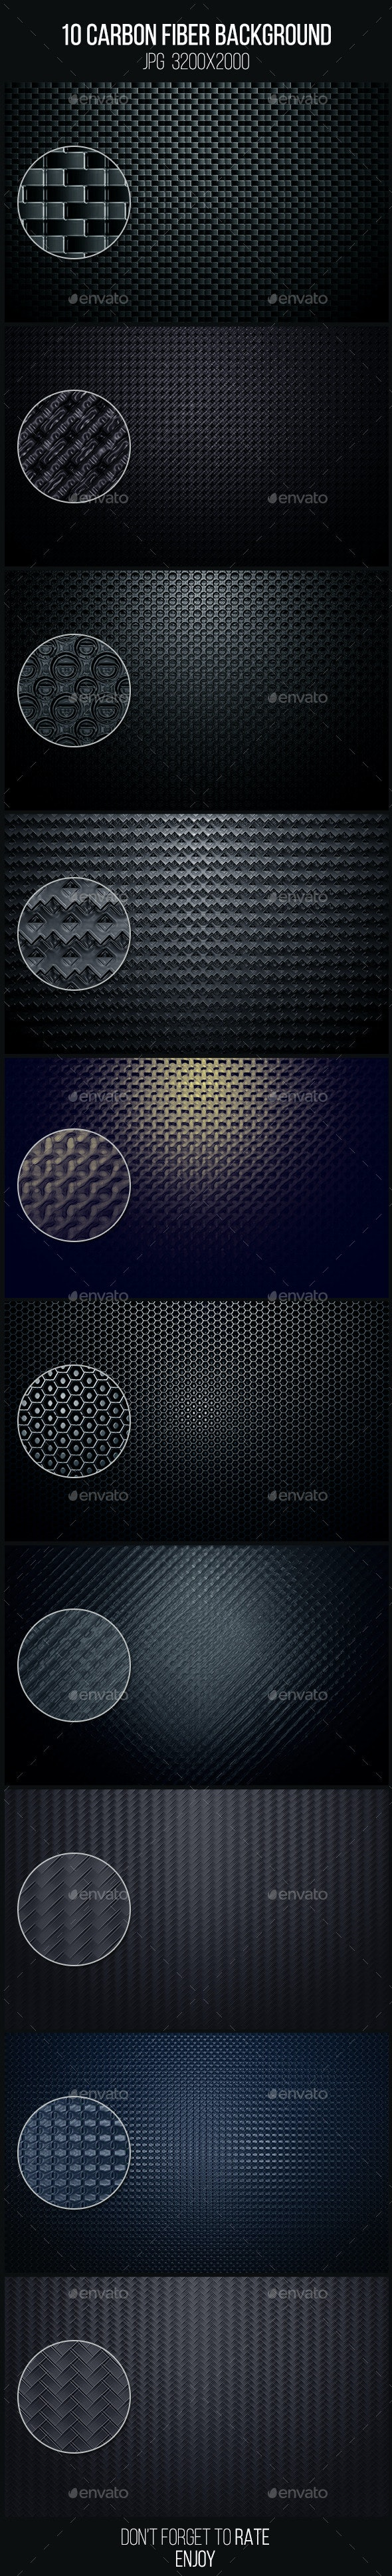 10 Carbon Fiber Background - Abstract Backgrounds